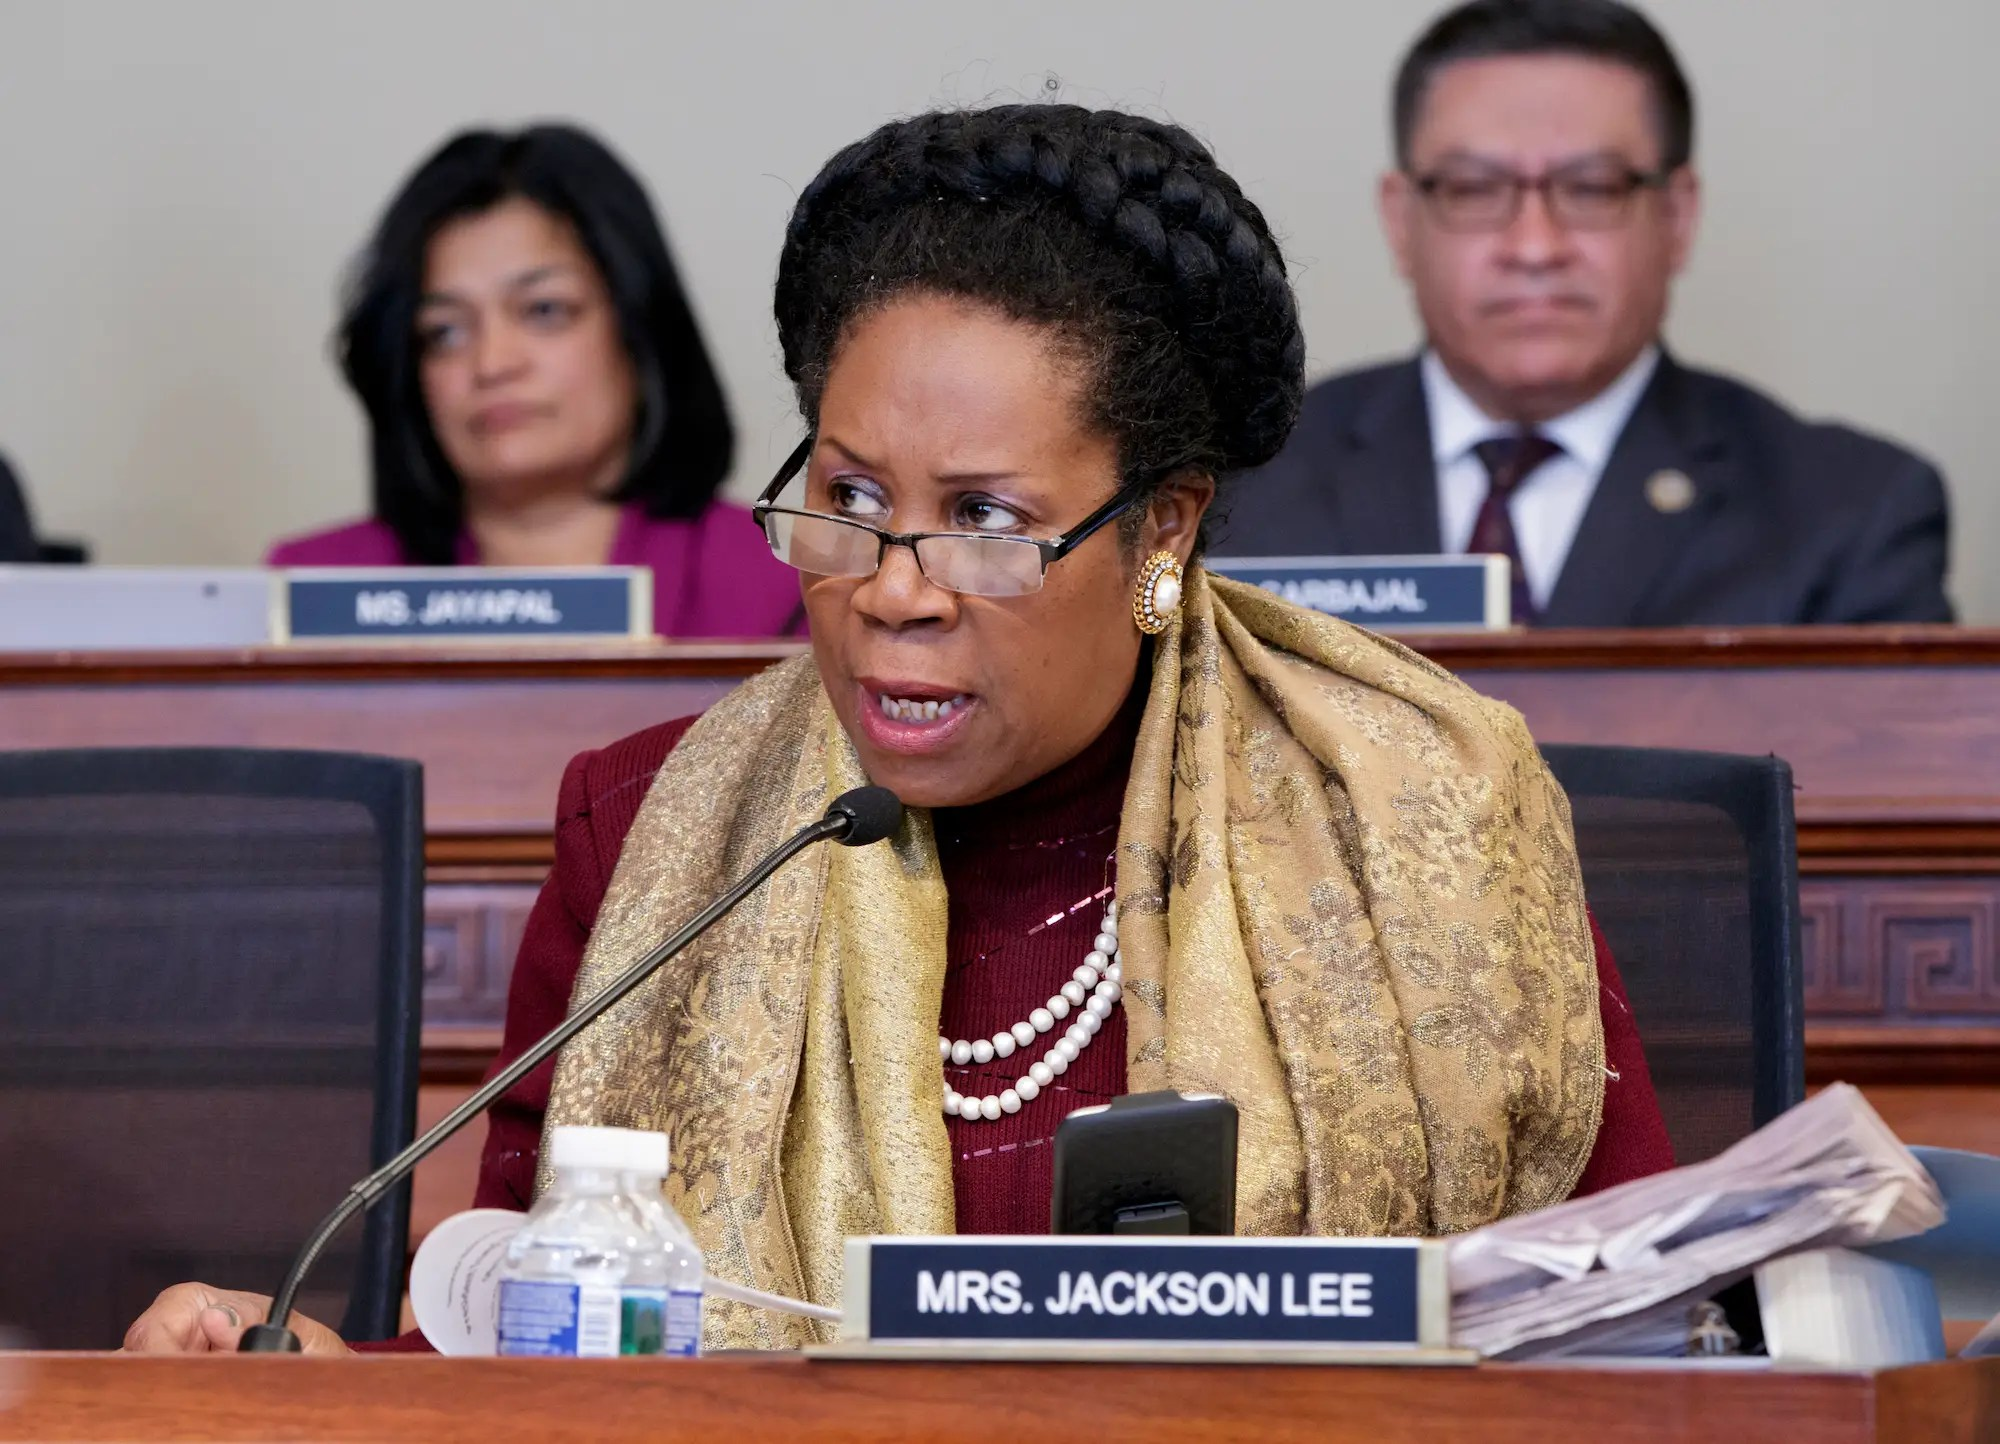 Sheila Jackson Lee women congress